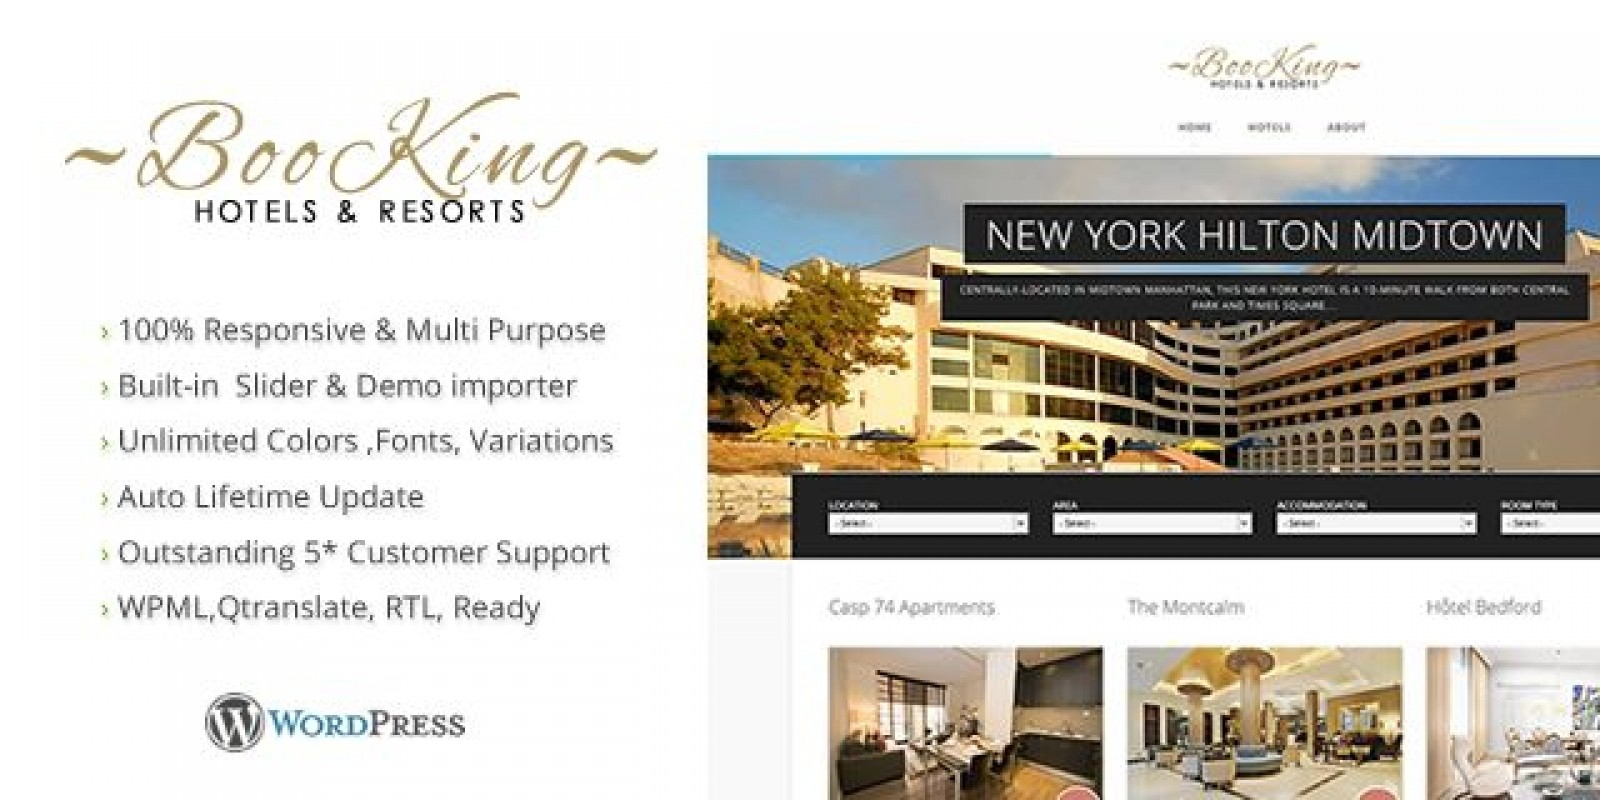 Booking - Hotel & Resort WordPress Theme